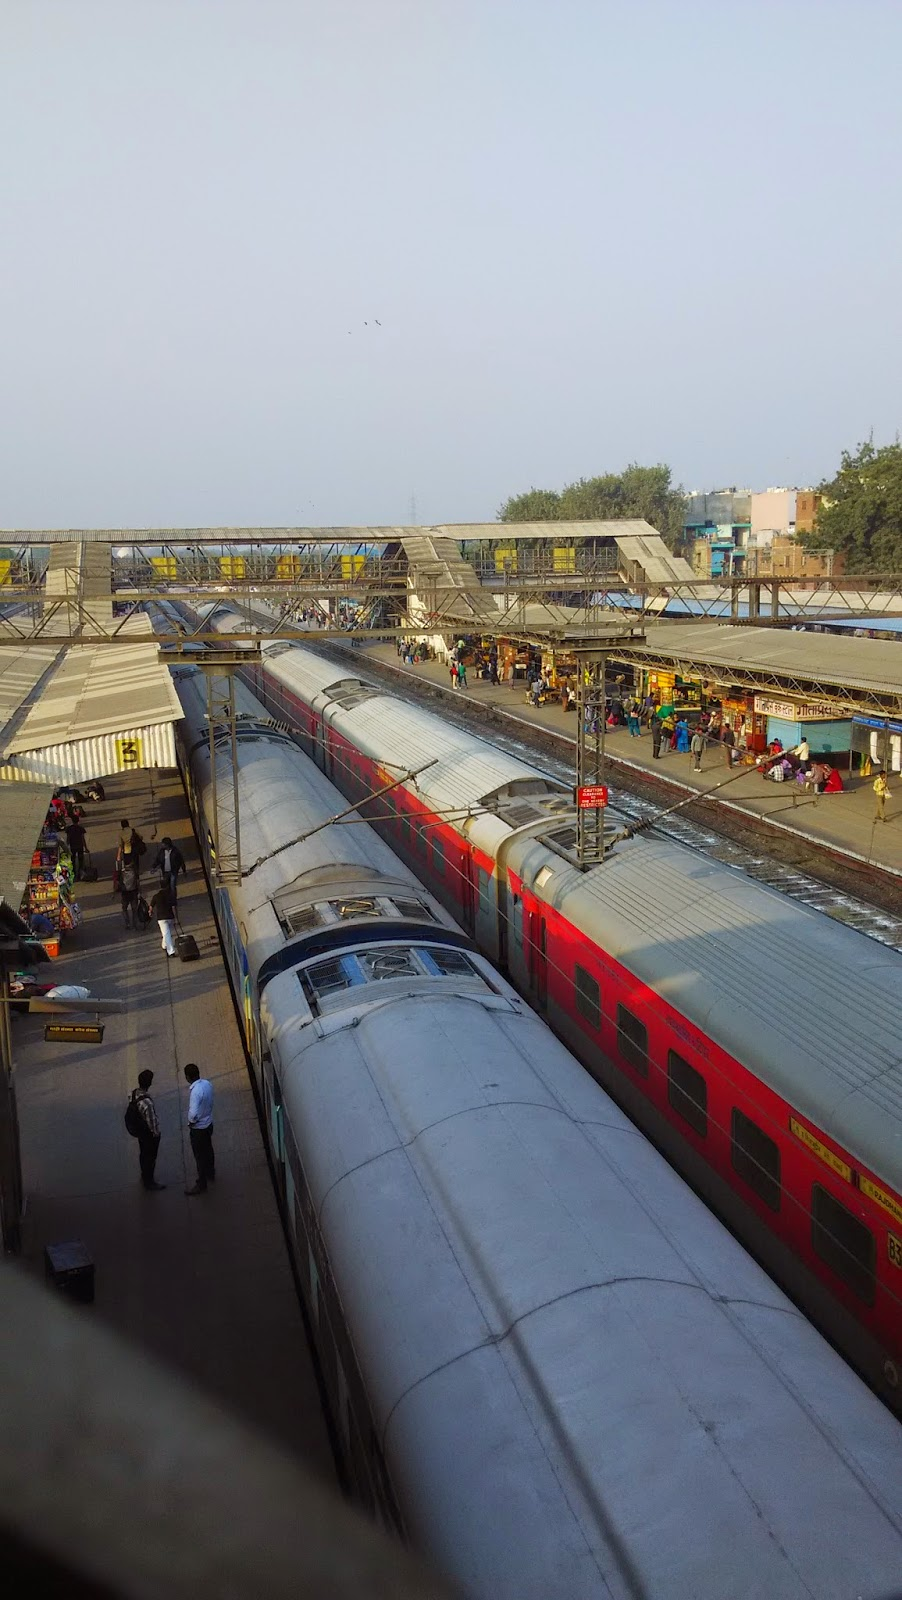 MY CHARM TO VISIT RAILWAY STATIONS